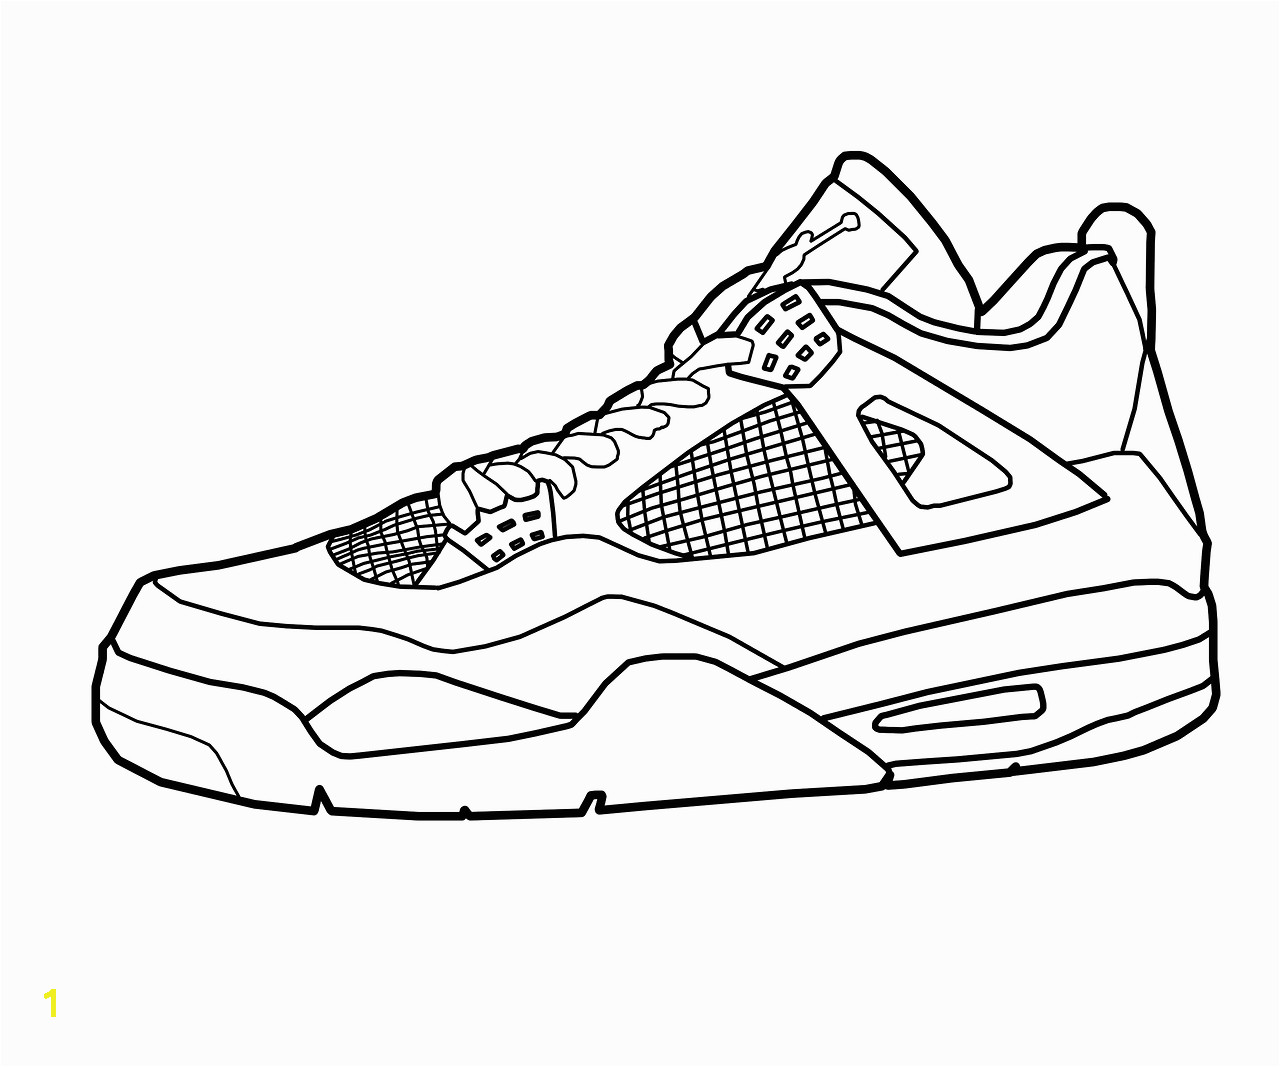 Sneaker Coloring Page Printable Tennis Shoe Coloring Page at Getcolorings